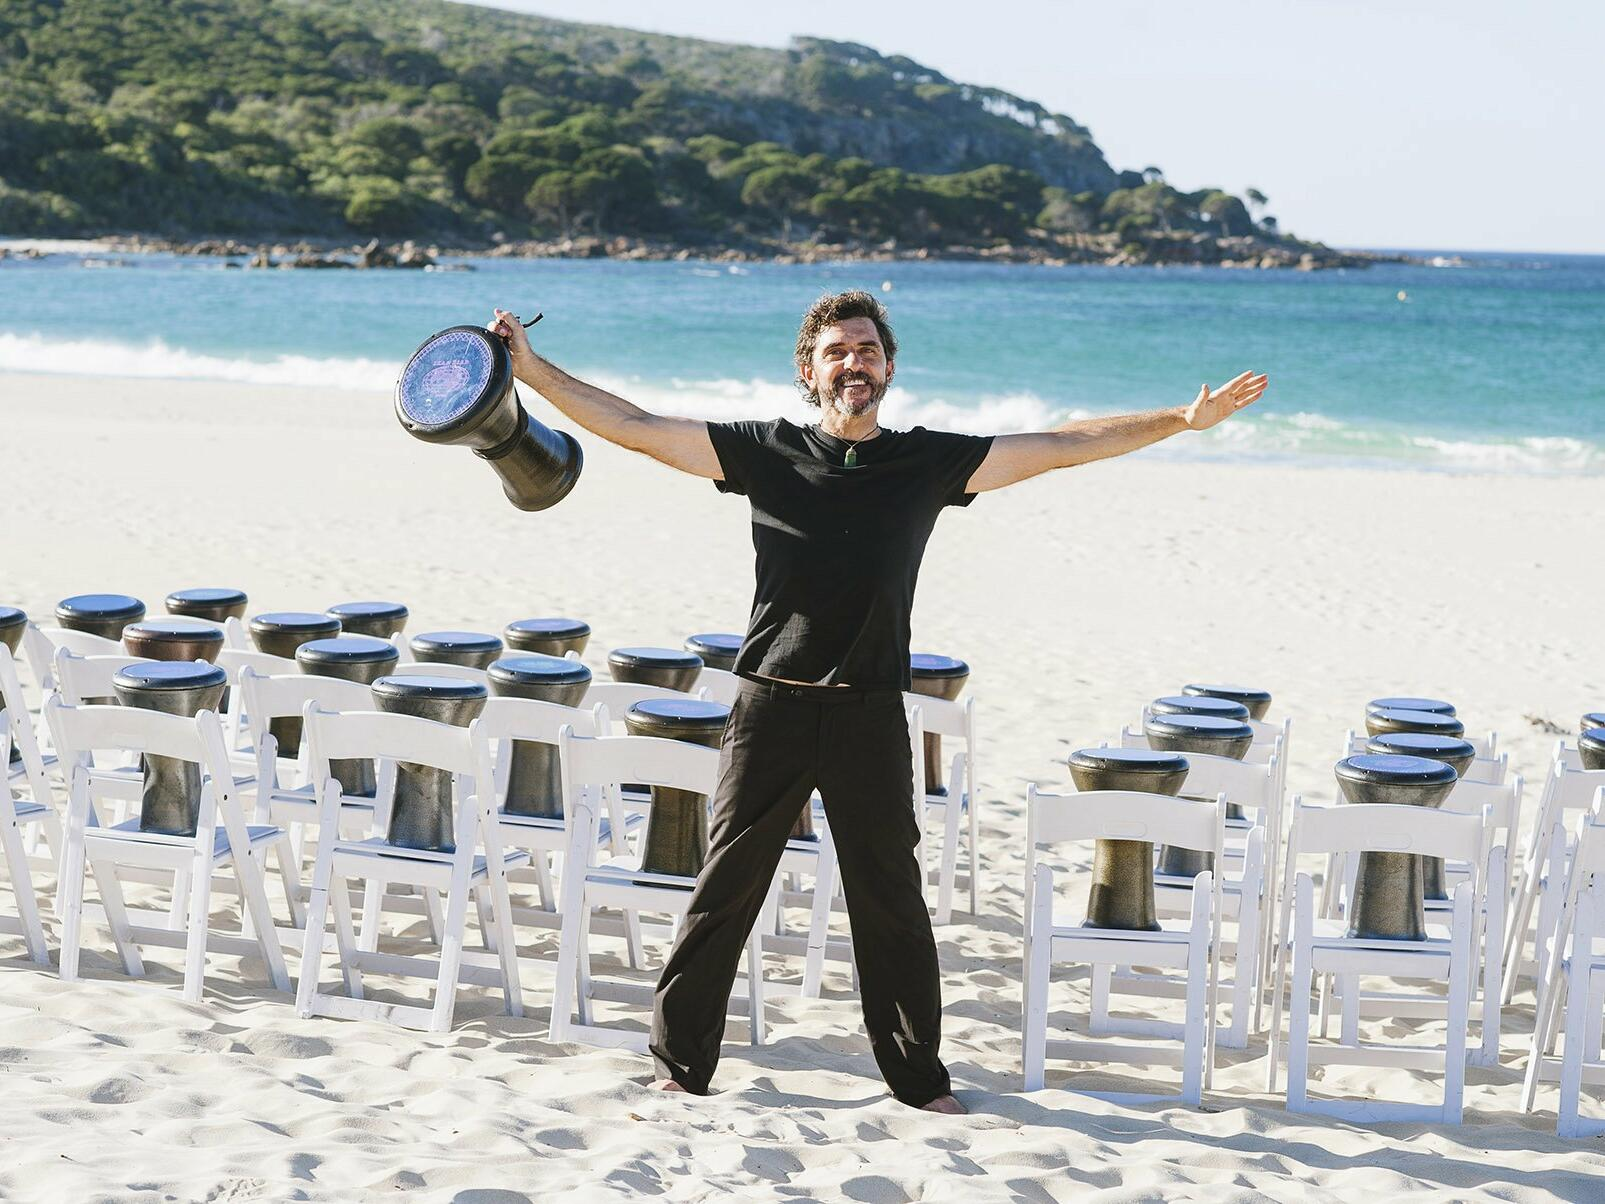 Discover Western Australia's #1 Conference Venue at Pullman Bunker Bay Resort